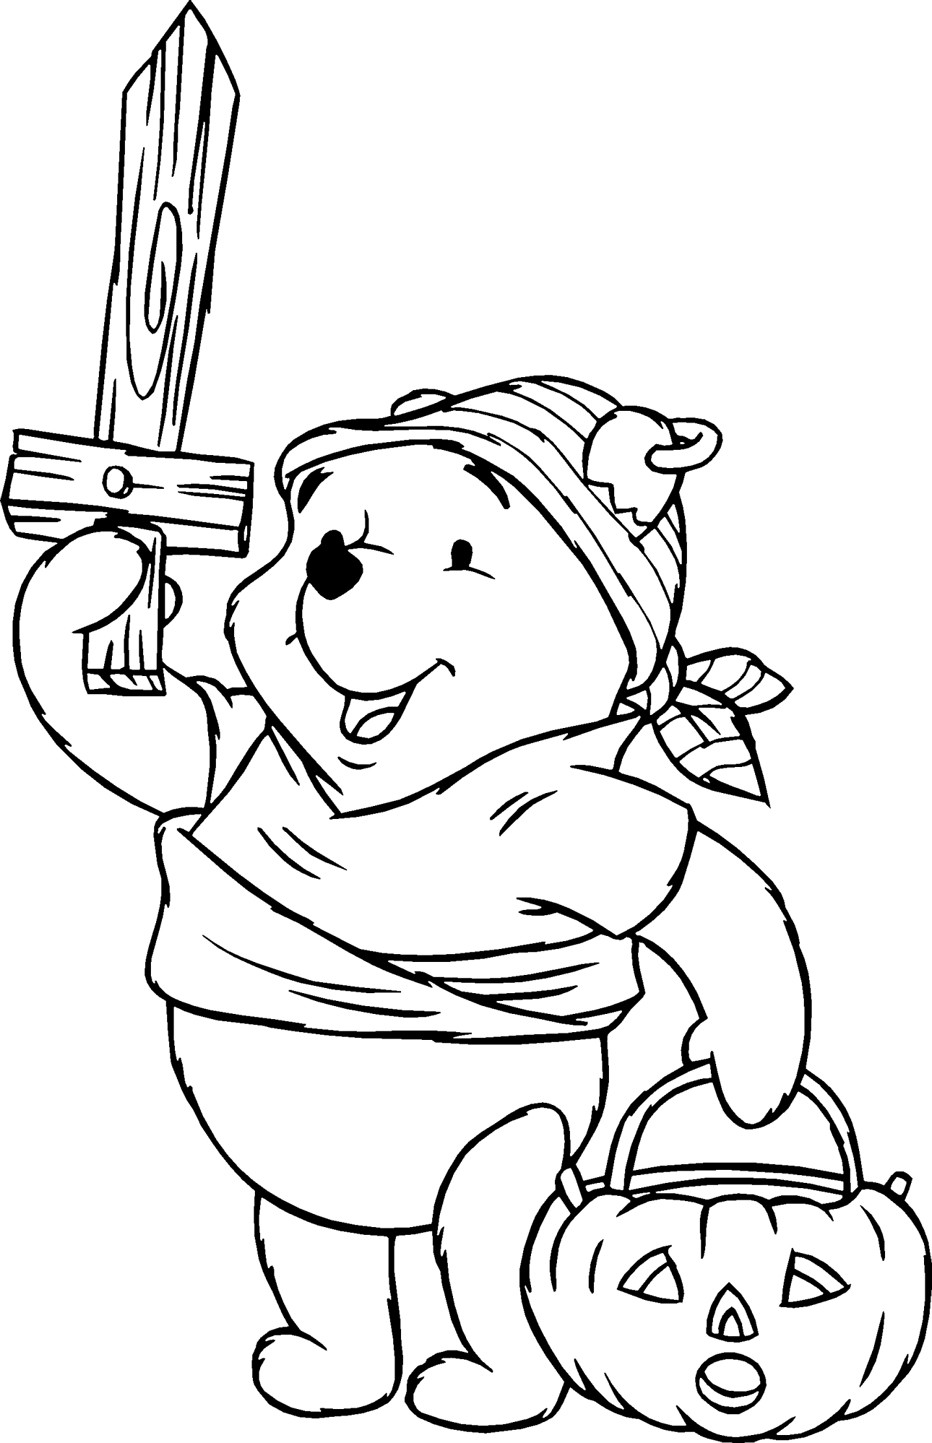 kids coloring pages printable super why coloring pages best coloring pages for kids printable coloring kids pages